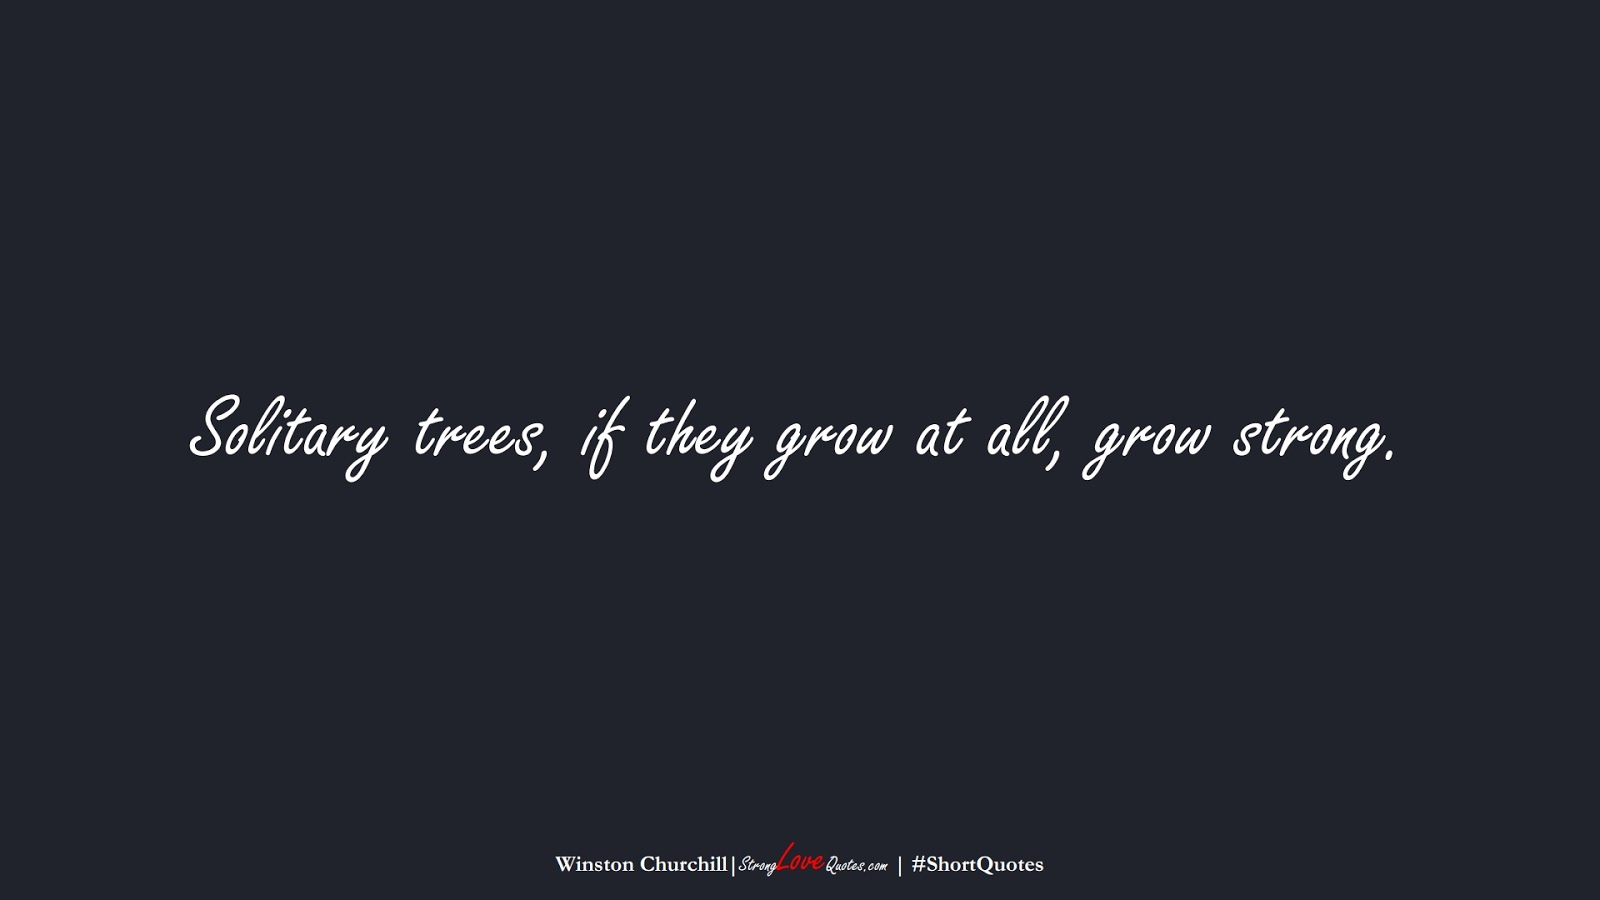 Solitary trees, if they grow at all, grow strong. (Winston Churchill);  #ShortQuotes